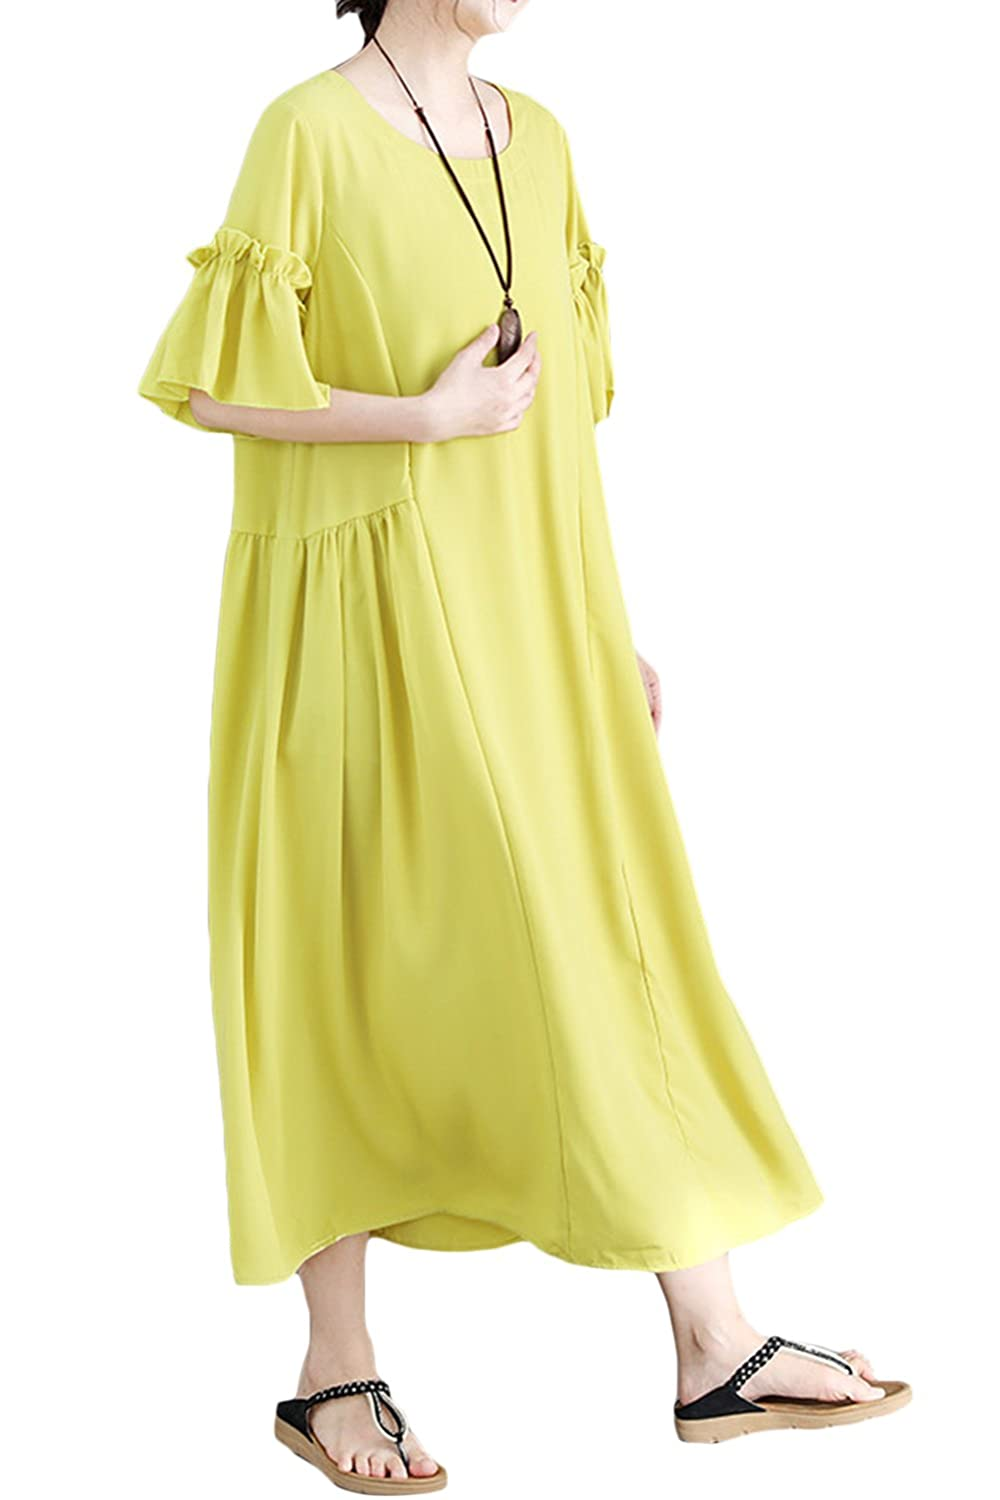 46b500b68e4 ... Short Sleeve Casual Maxi Dresses Summer Beach Linen Dresses. Wholesale  Price 27.99 50% cottom+50%linen. Made in China No Fur compision. Pull On  closure